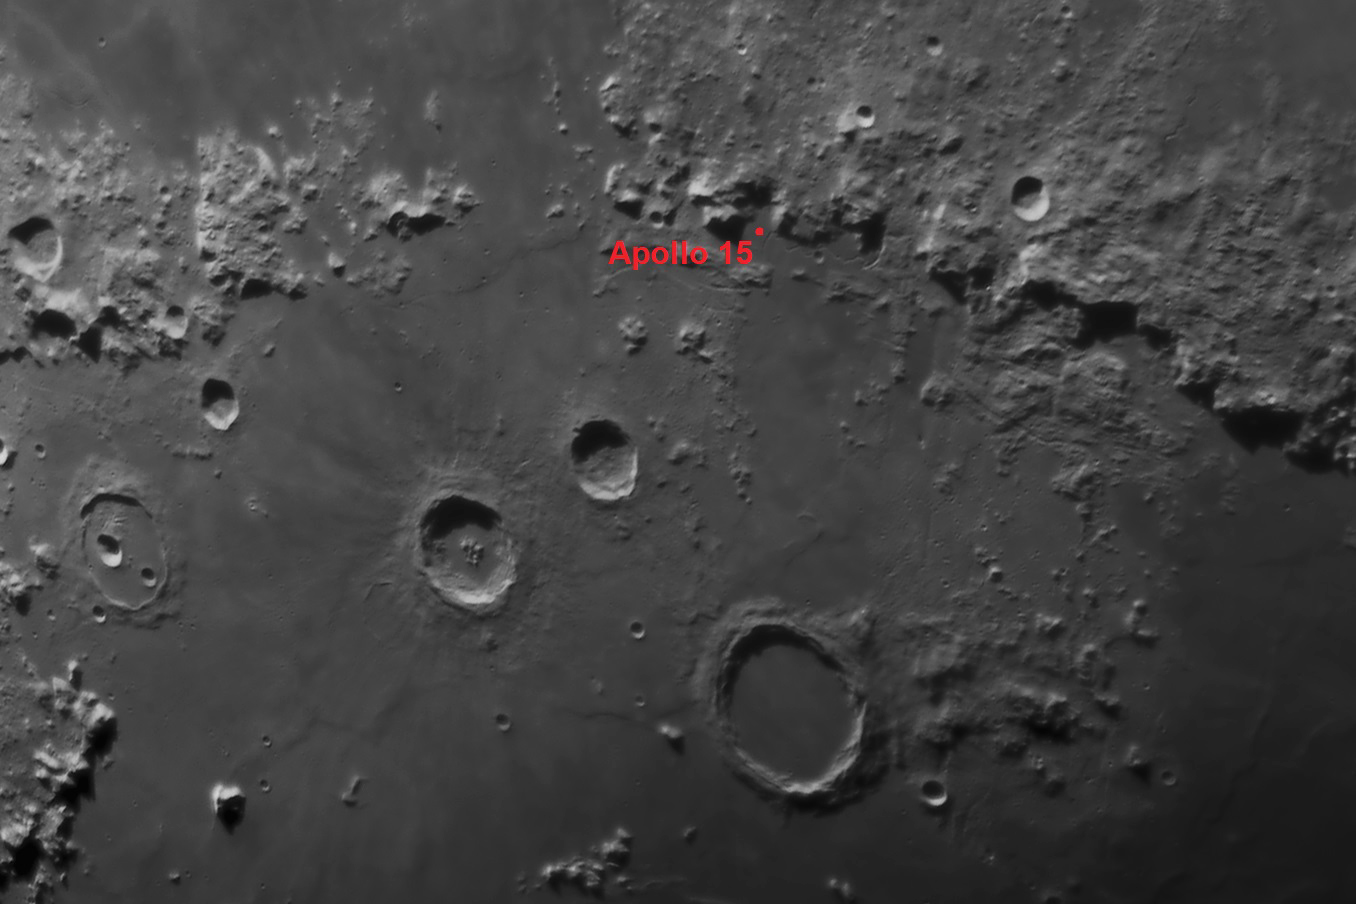 The Apollo 15 landing site located near the northern end of the Apennine mountain range